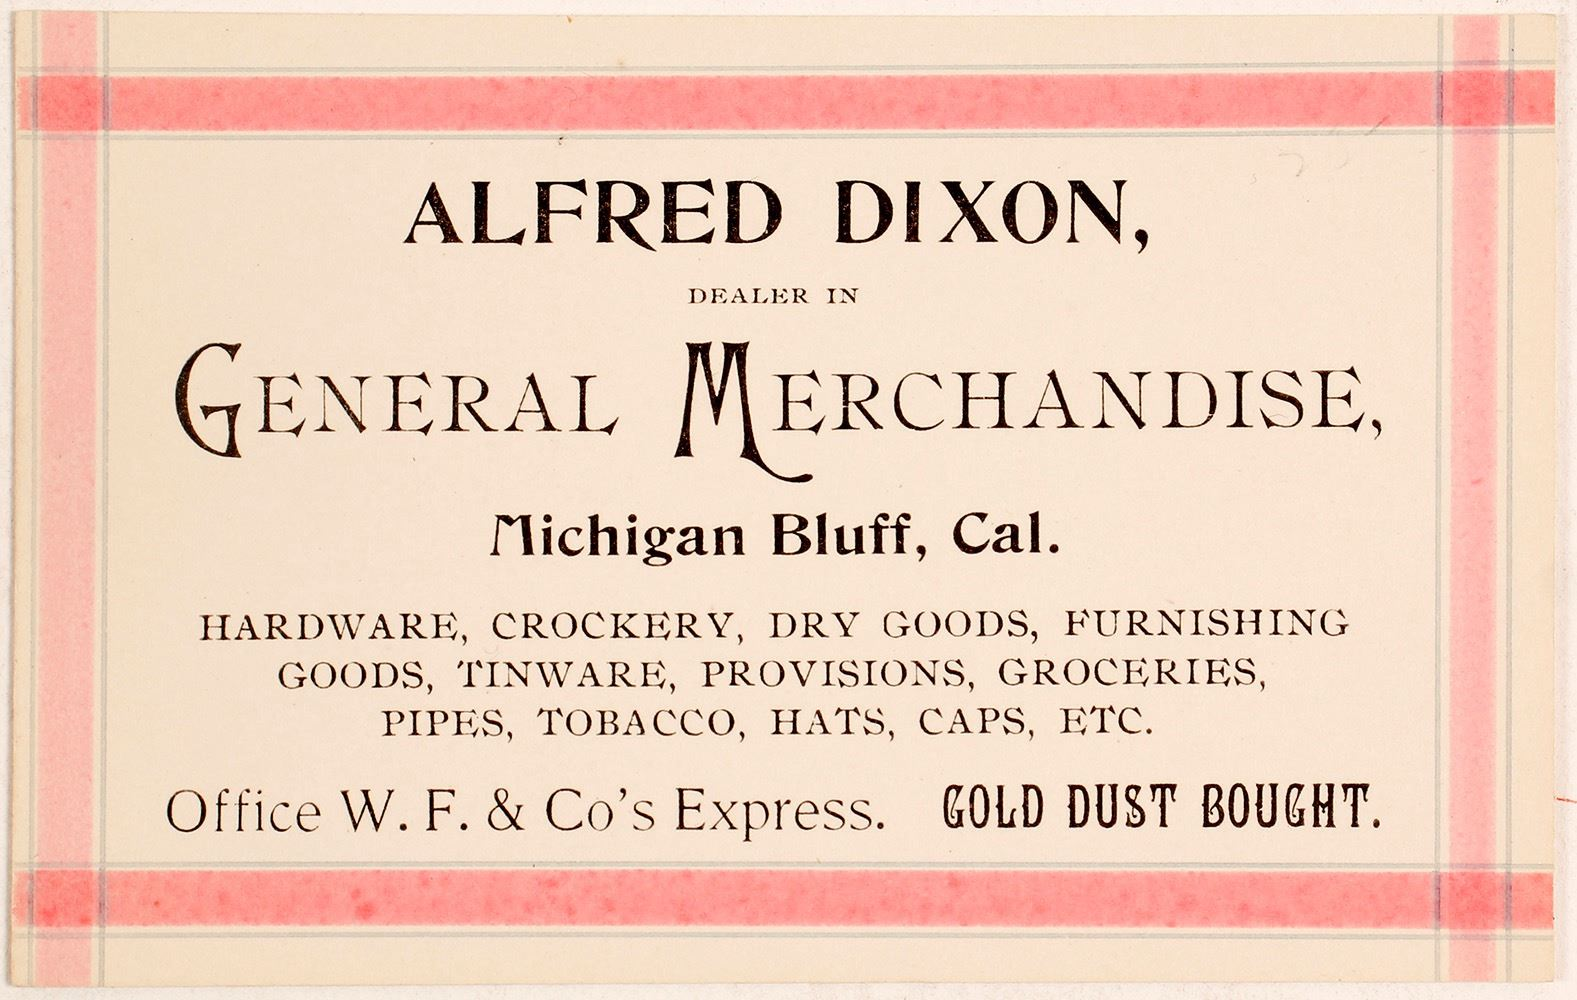 Alfred dixon general merchandise michigan bluff business card image 1 alfred dixon general merchandise michigan bluff business card reheart Image collections